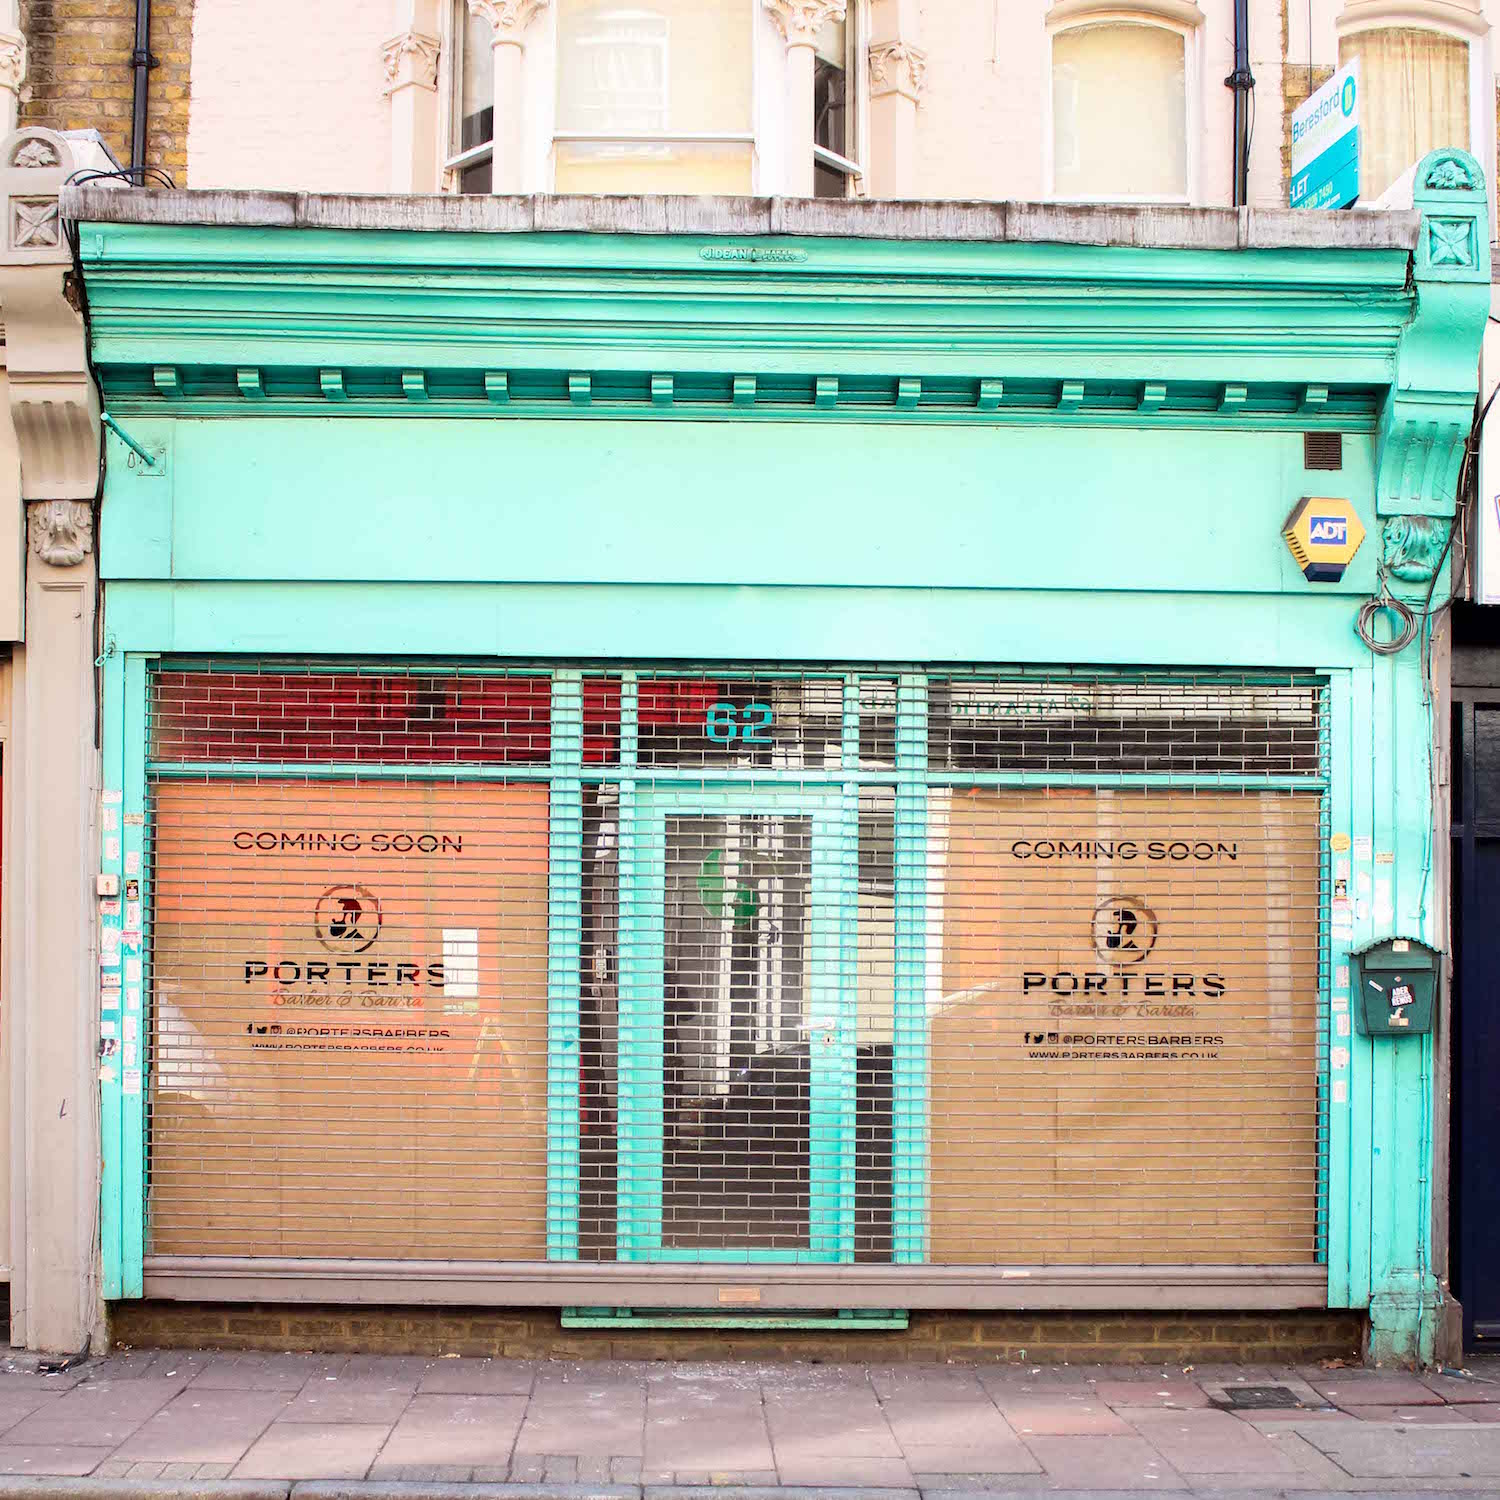 http://www.portersbarbers.co.uk/wp-content/uploads/Brixton-Shop-1.jpg